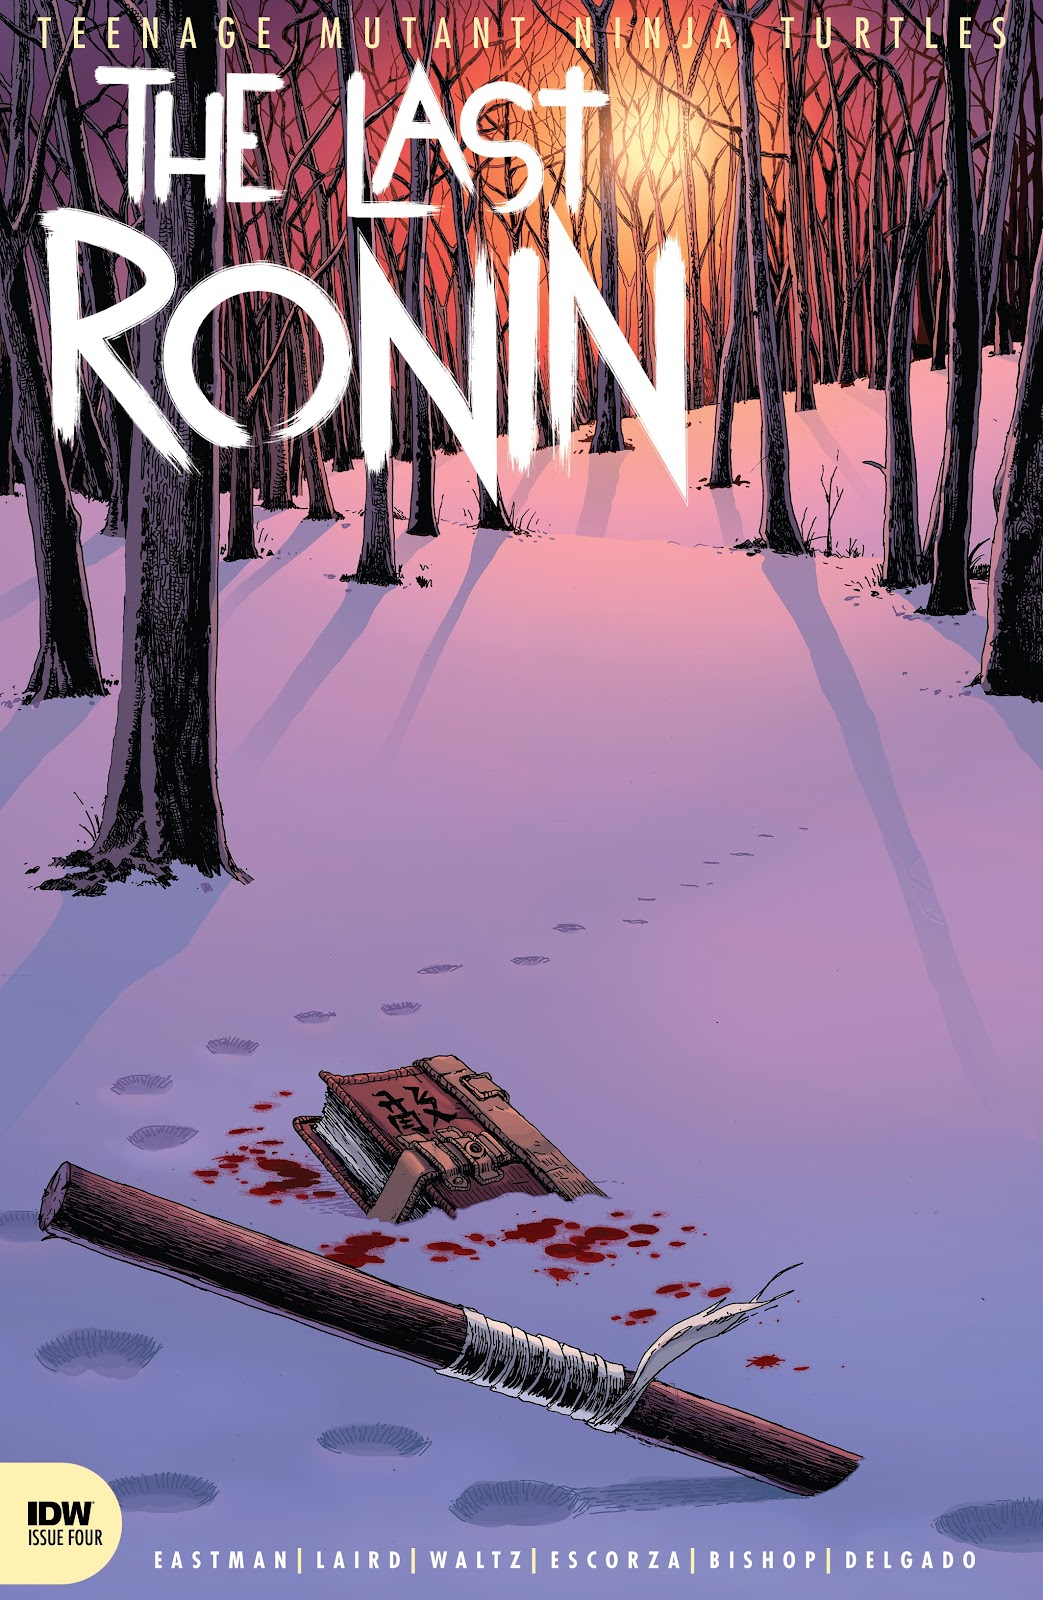 TMNT The Last Ronin 4, cover, 2021